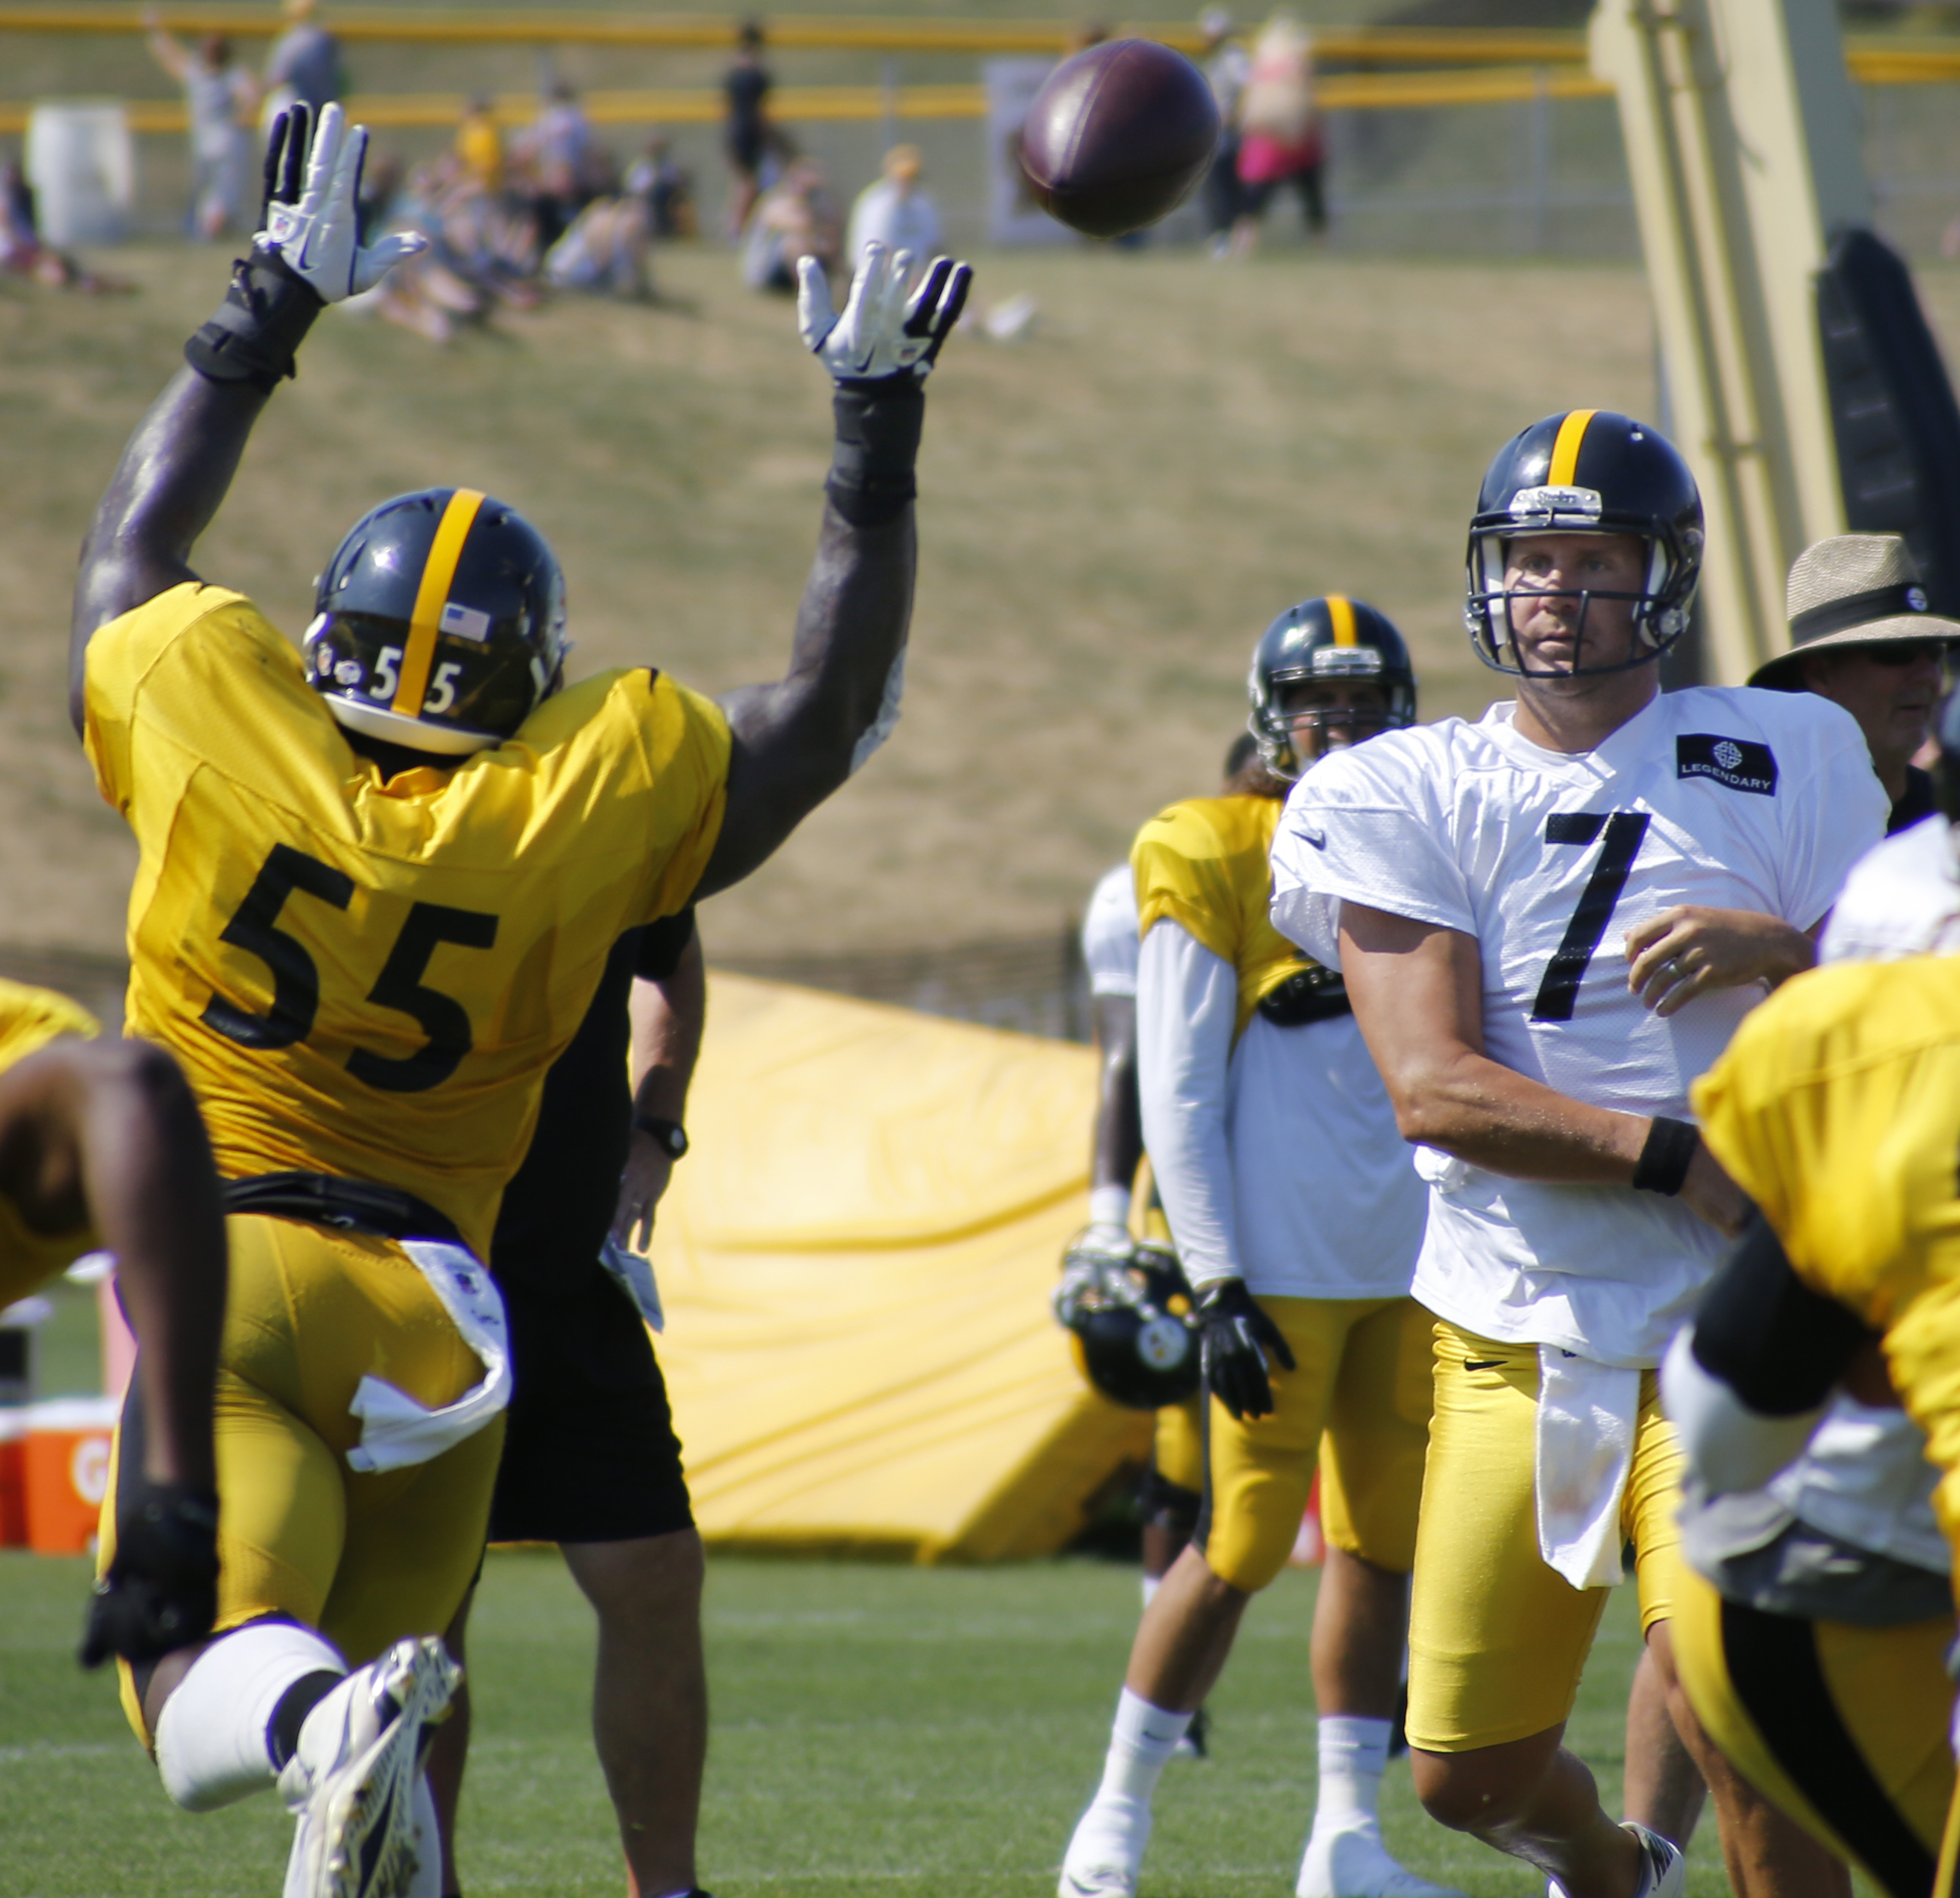 Pittsburgh Steelers outside linebacker Arthur Moats (55) puts pressure on quarterback Ben Roethlisberger (7) as he passes in a drill during NFL football training camp in Latrobe, Pa., Sunday, Aug. 16, 2015. (AP Photo/Keith Srakocic)